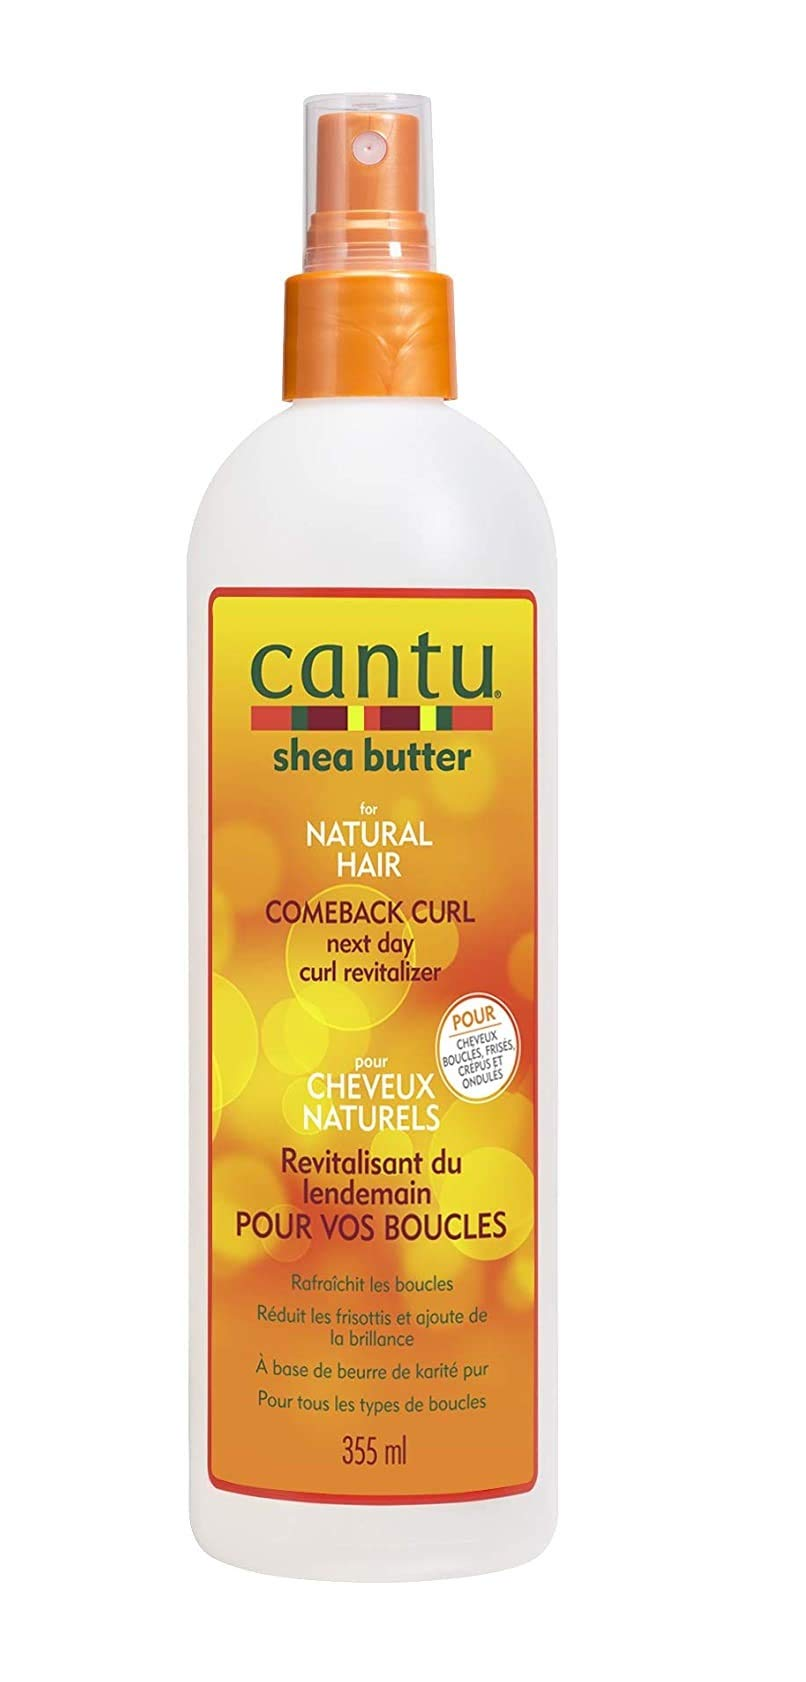 Cantu Comeback Next Day Curl Revitalizer, 12 Fluid Ounce